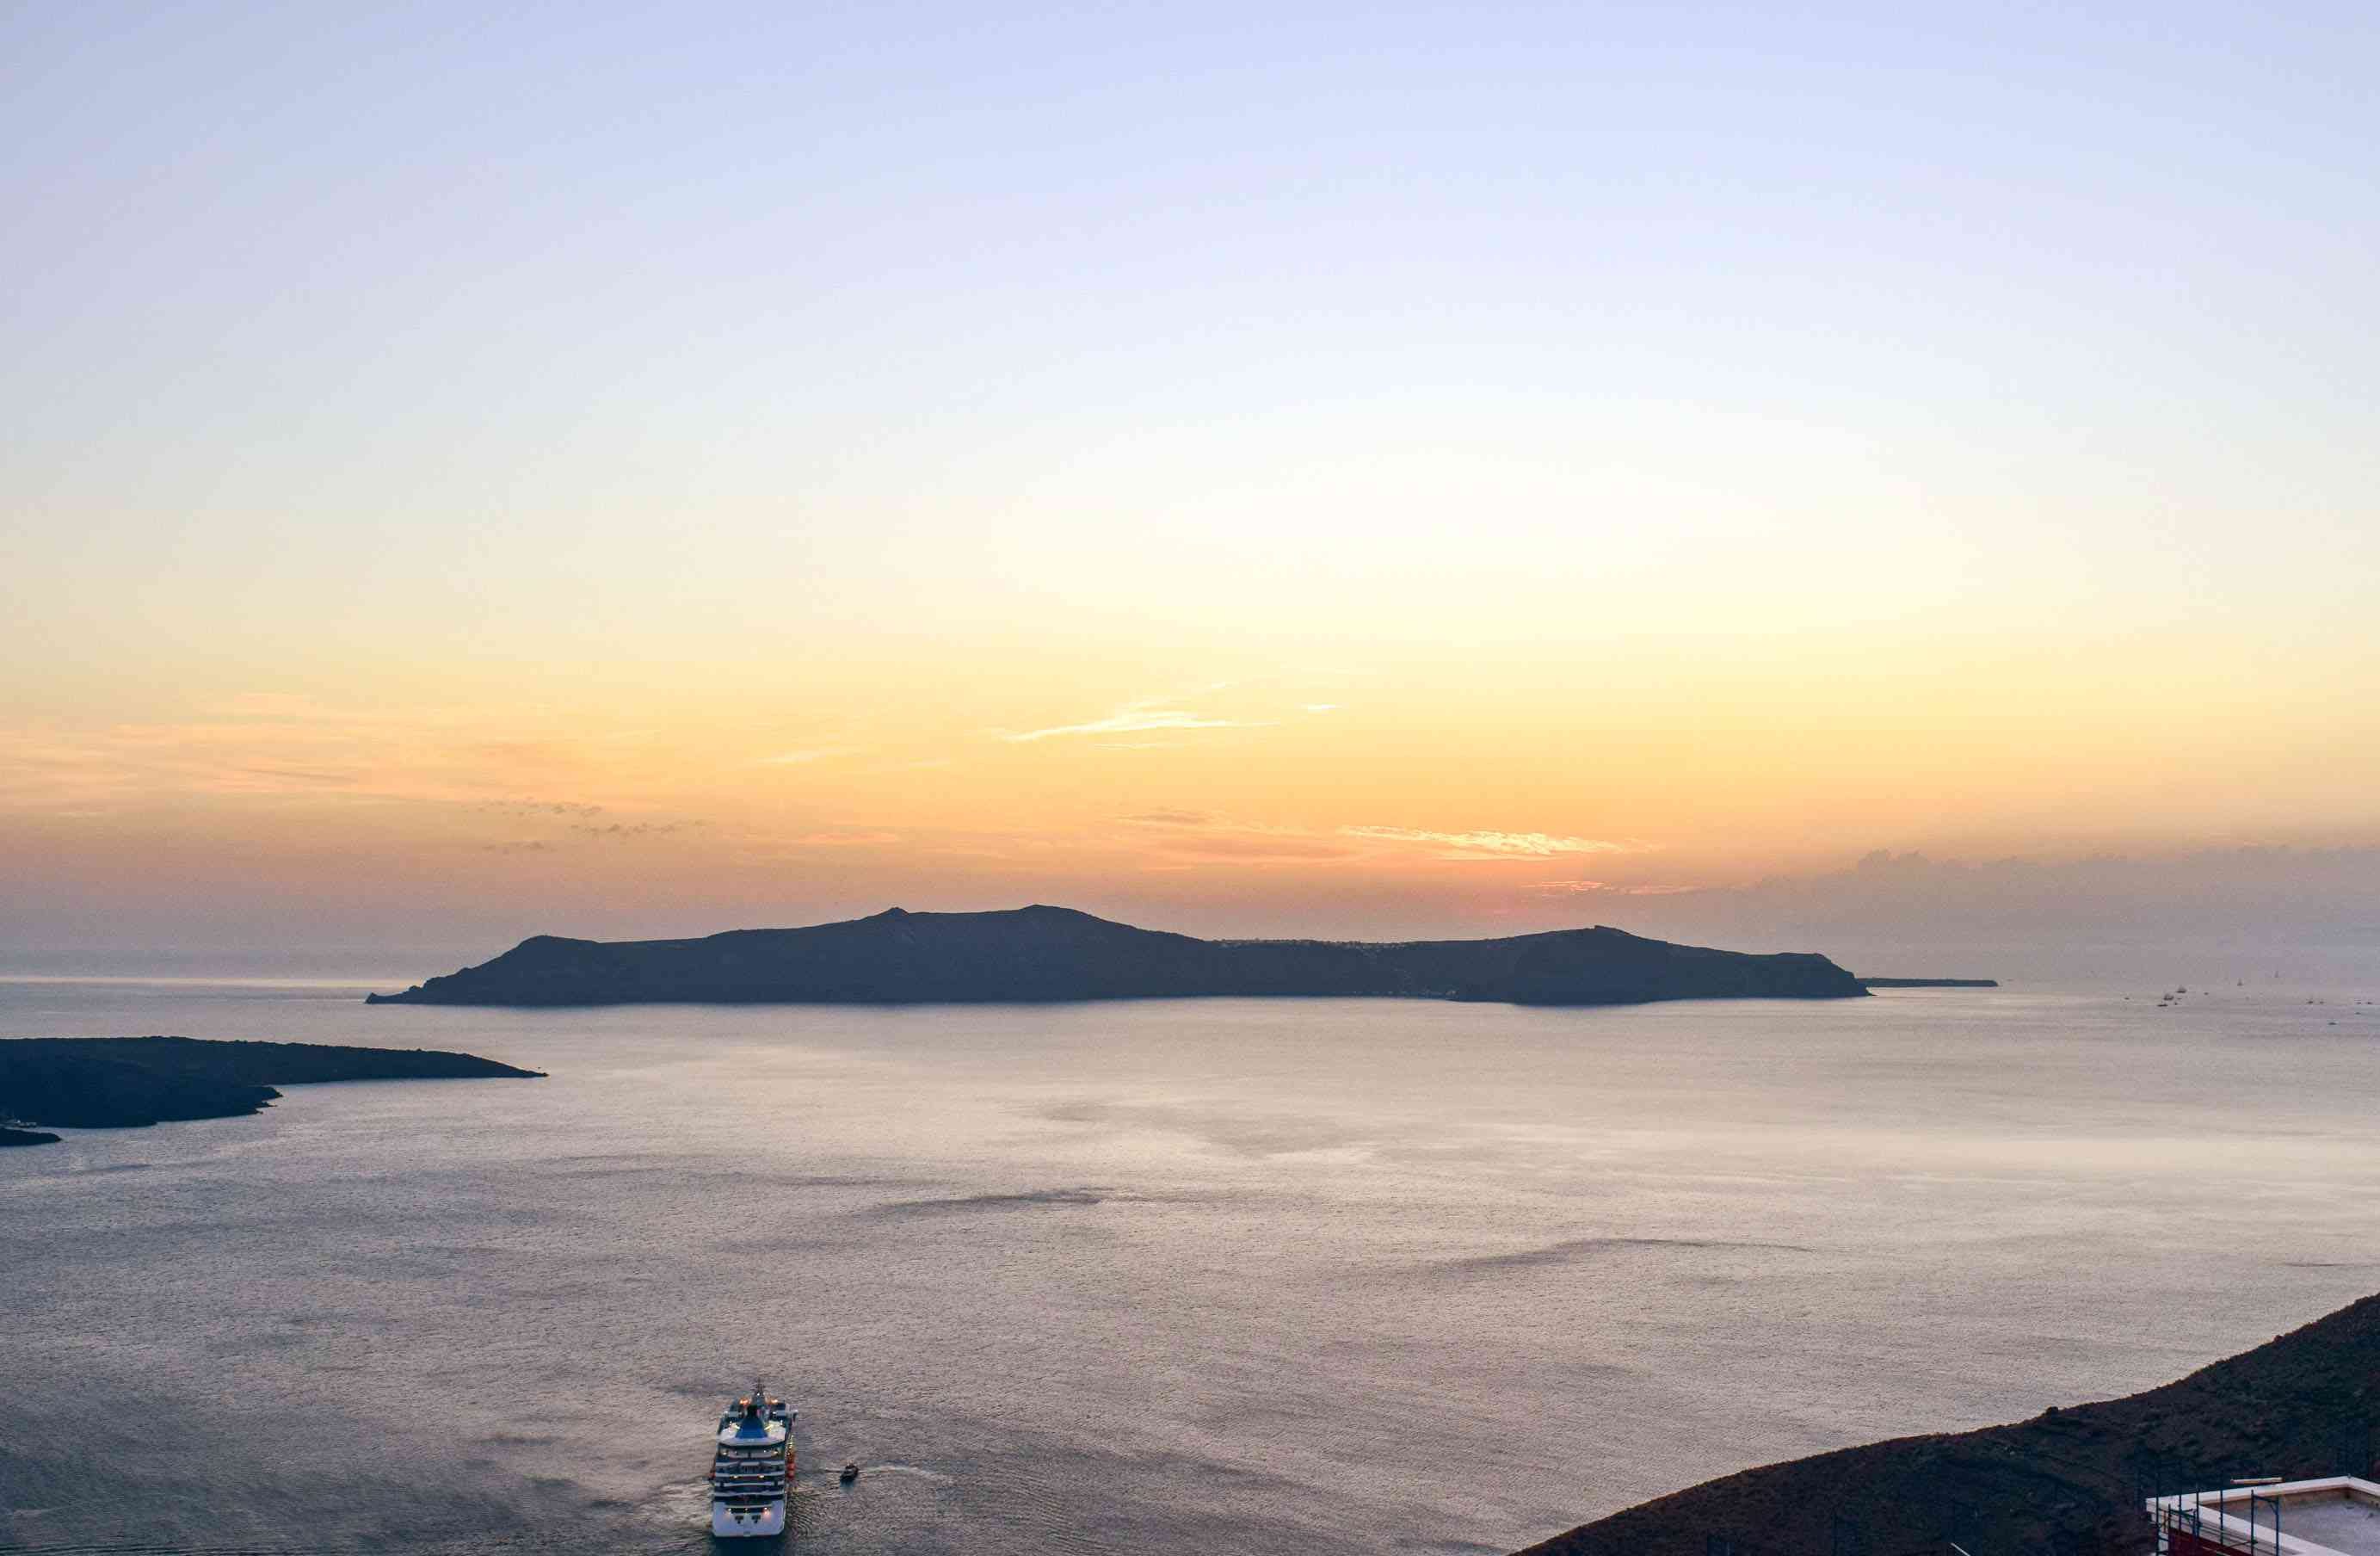 View of the sunset off the coast of Santorini